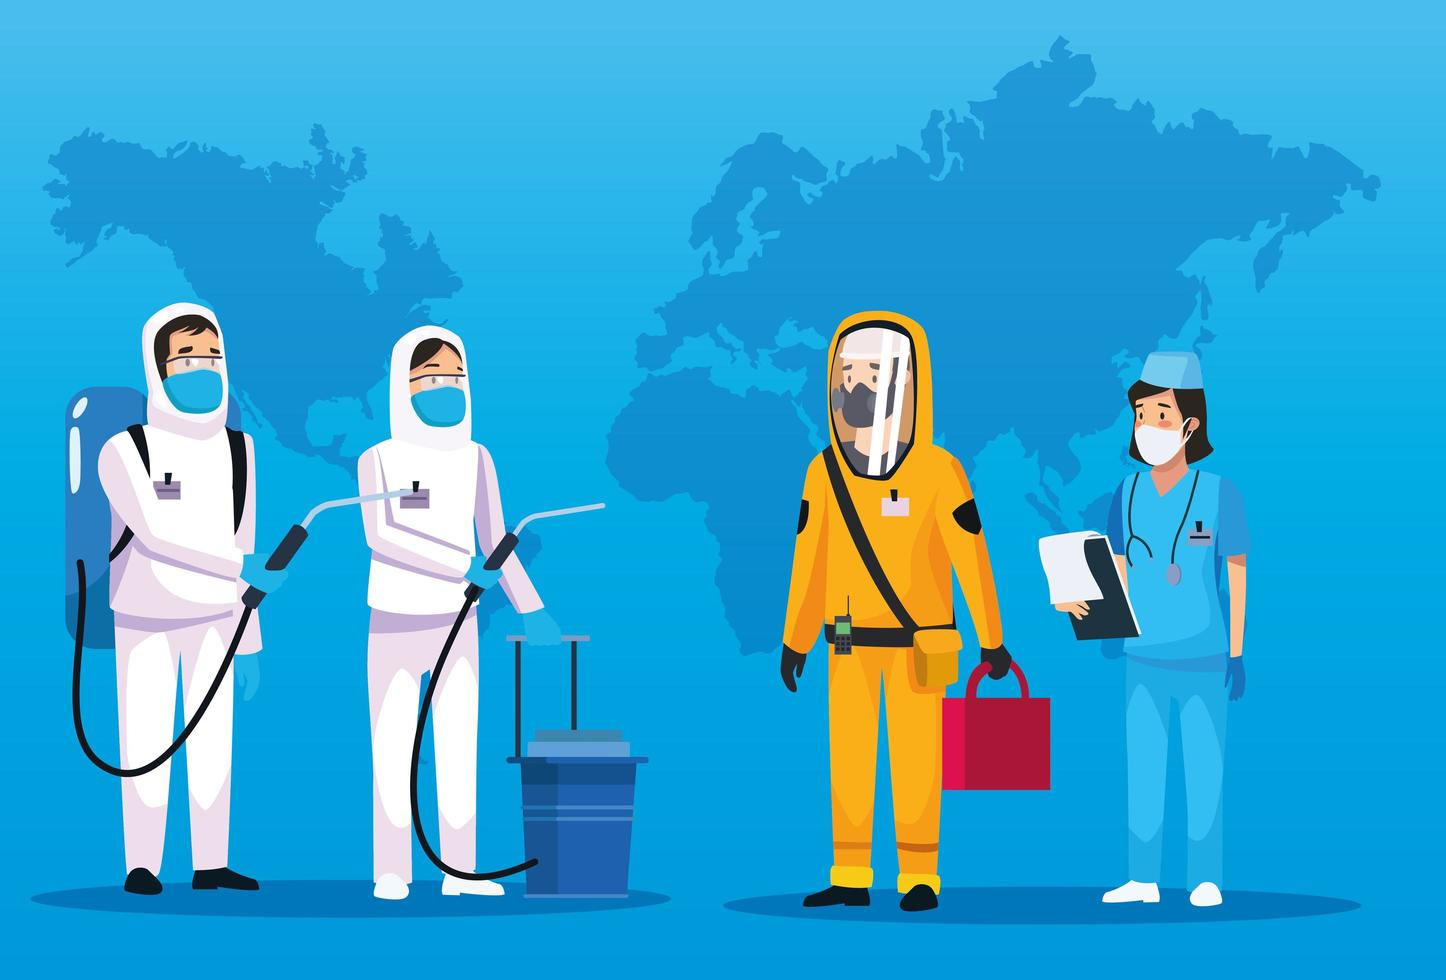 Biohazard cleaning persons with nurse and world map vector